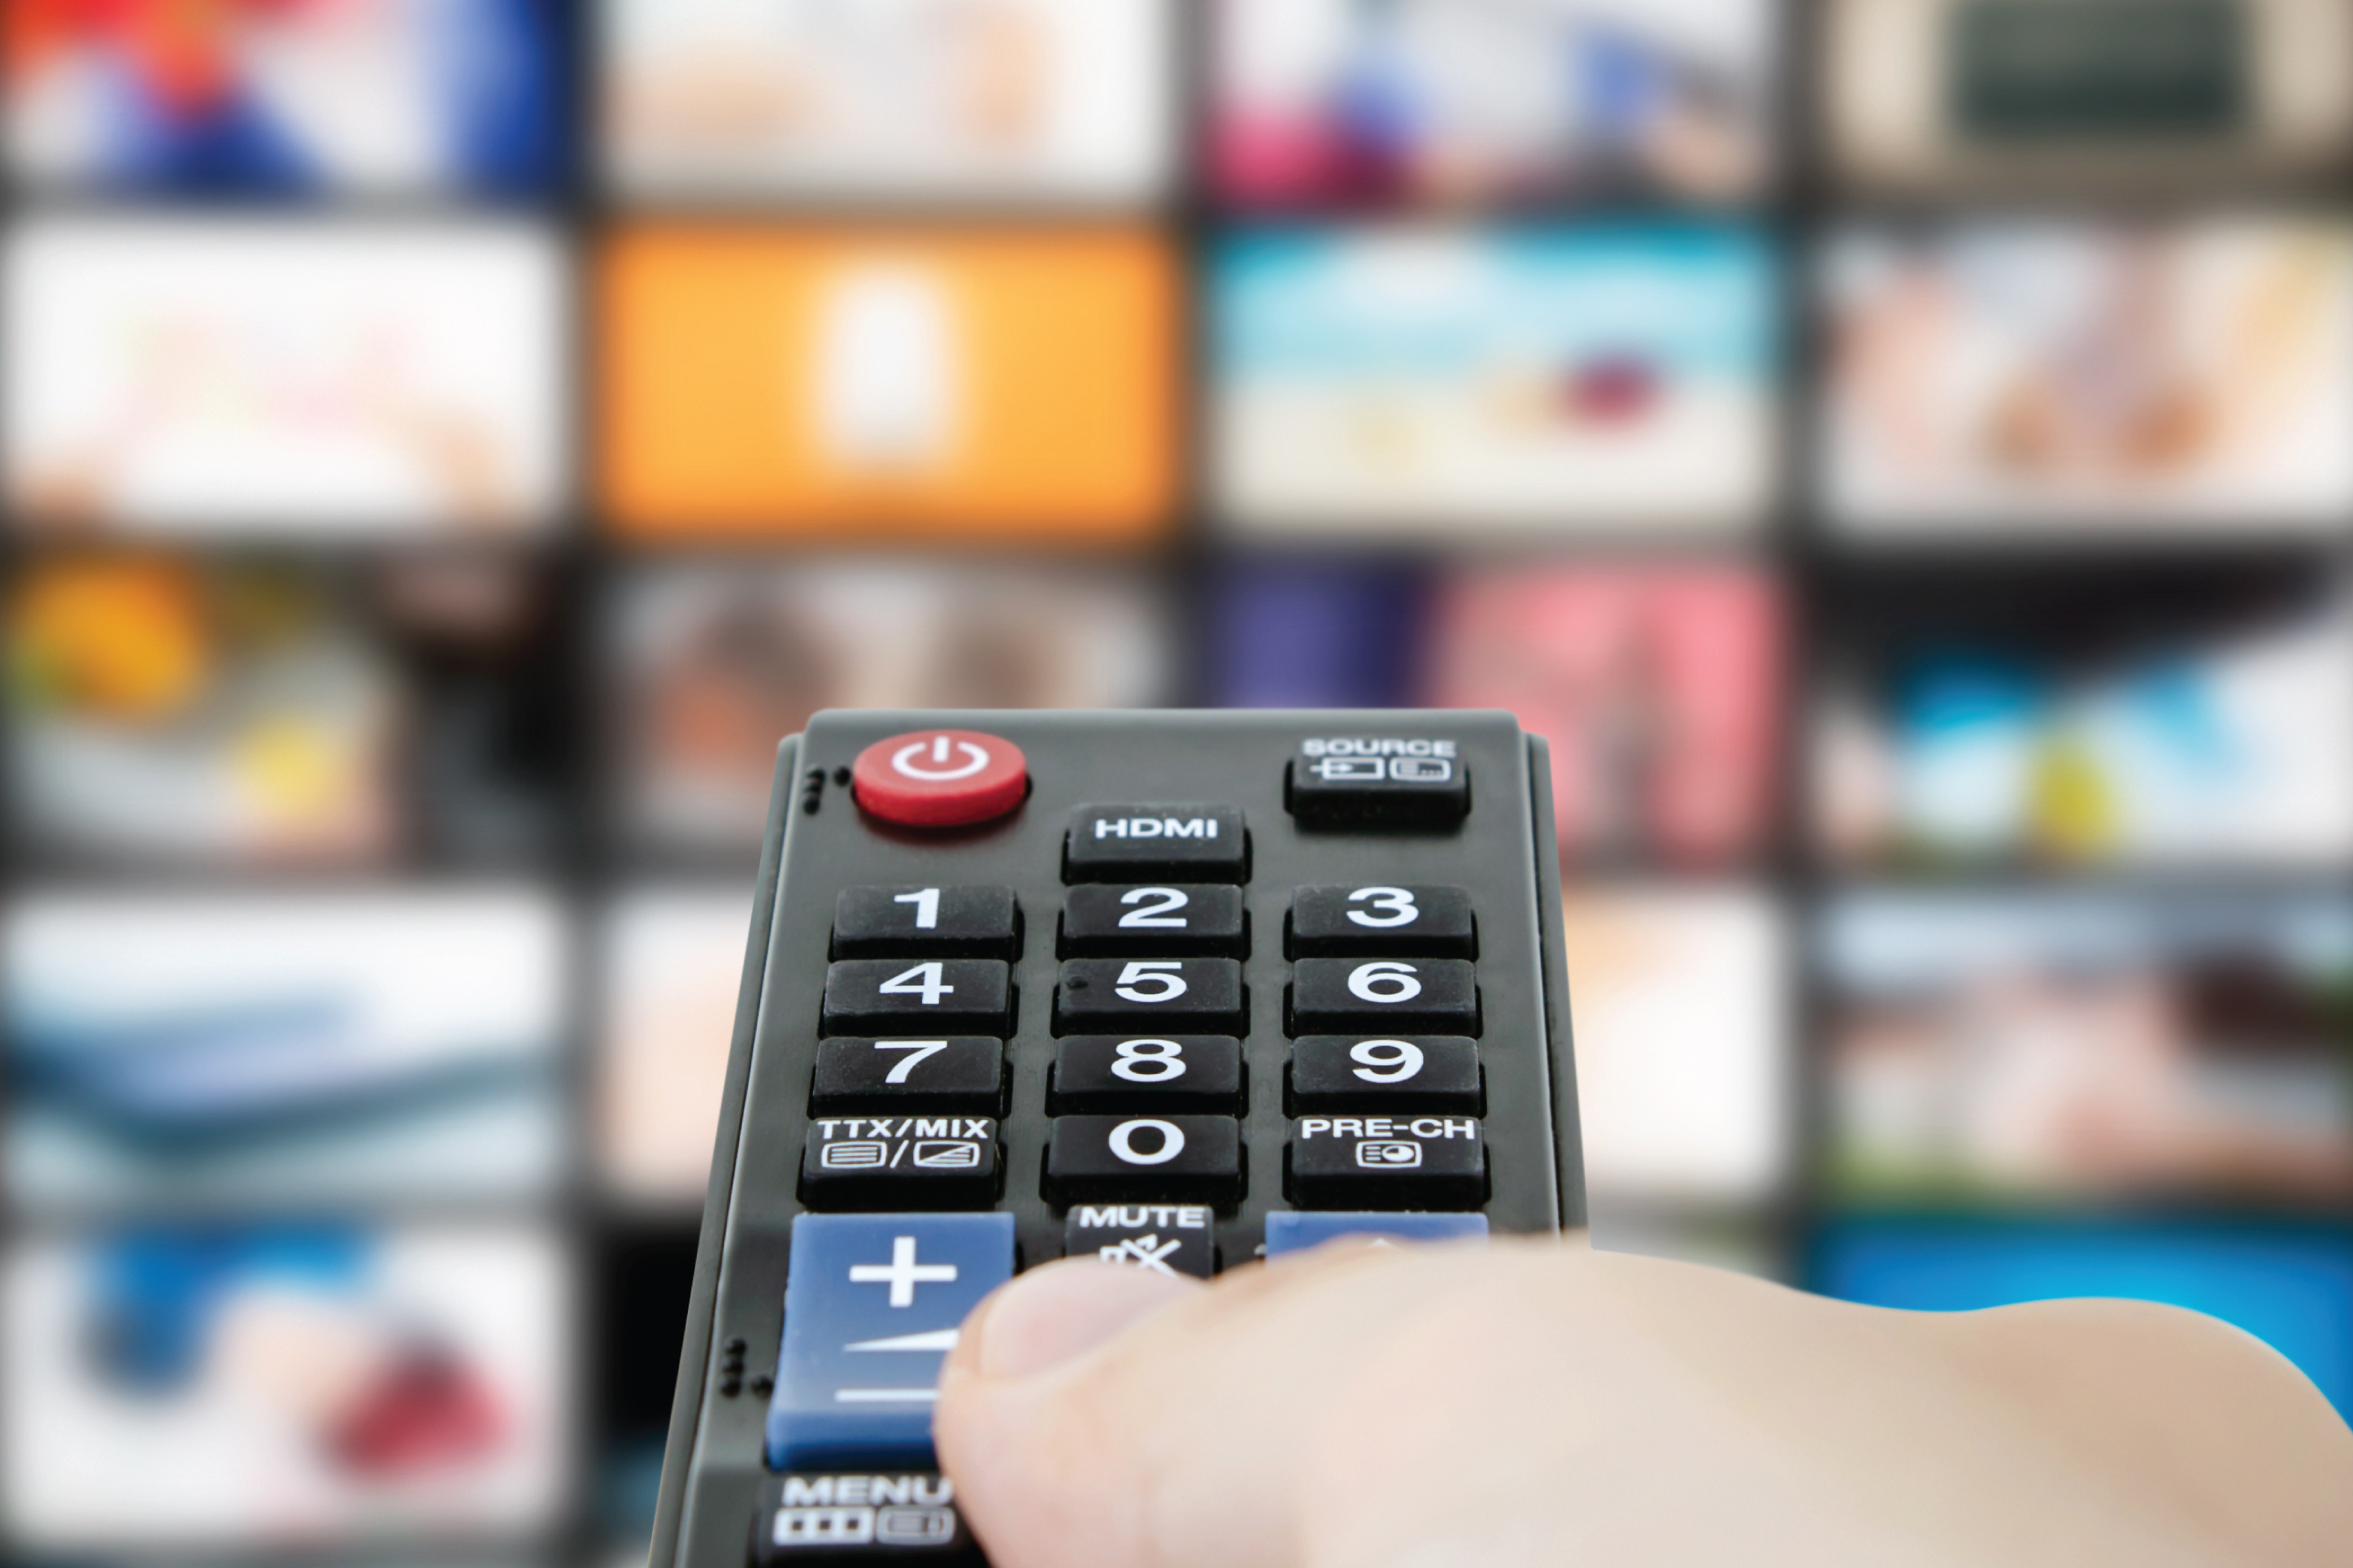 using a remote to select streaming services on a tv